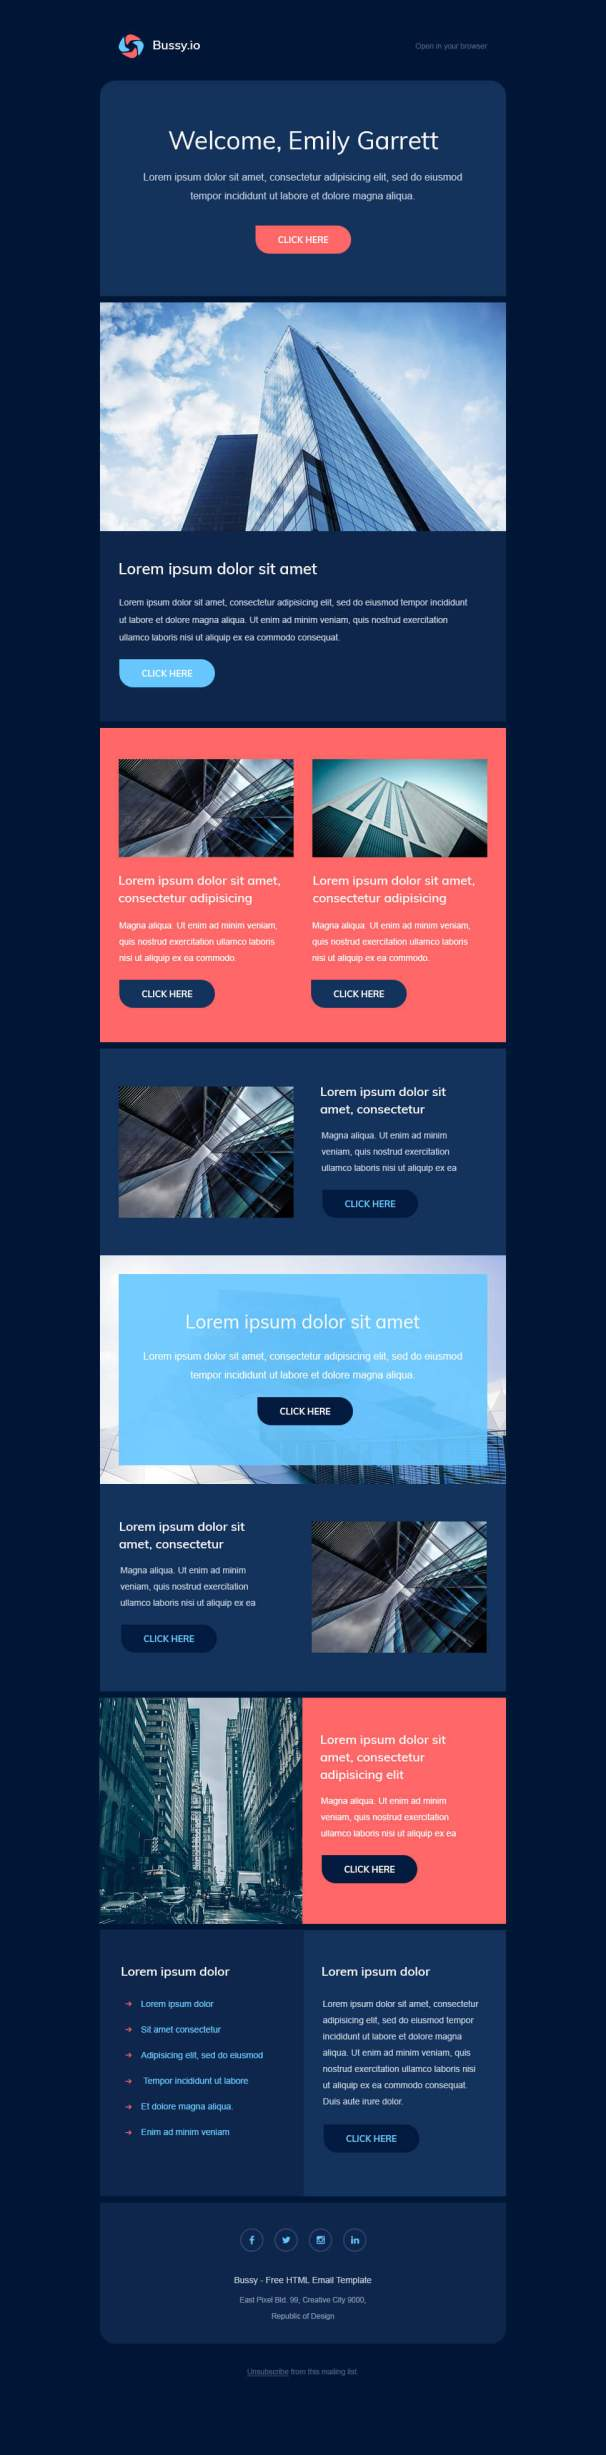 bussy-template-preview